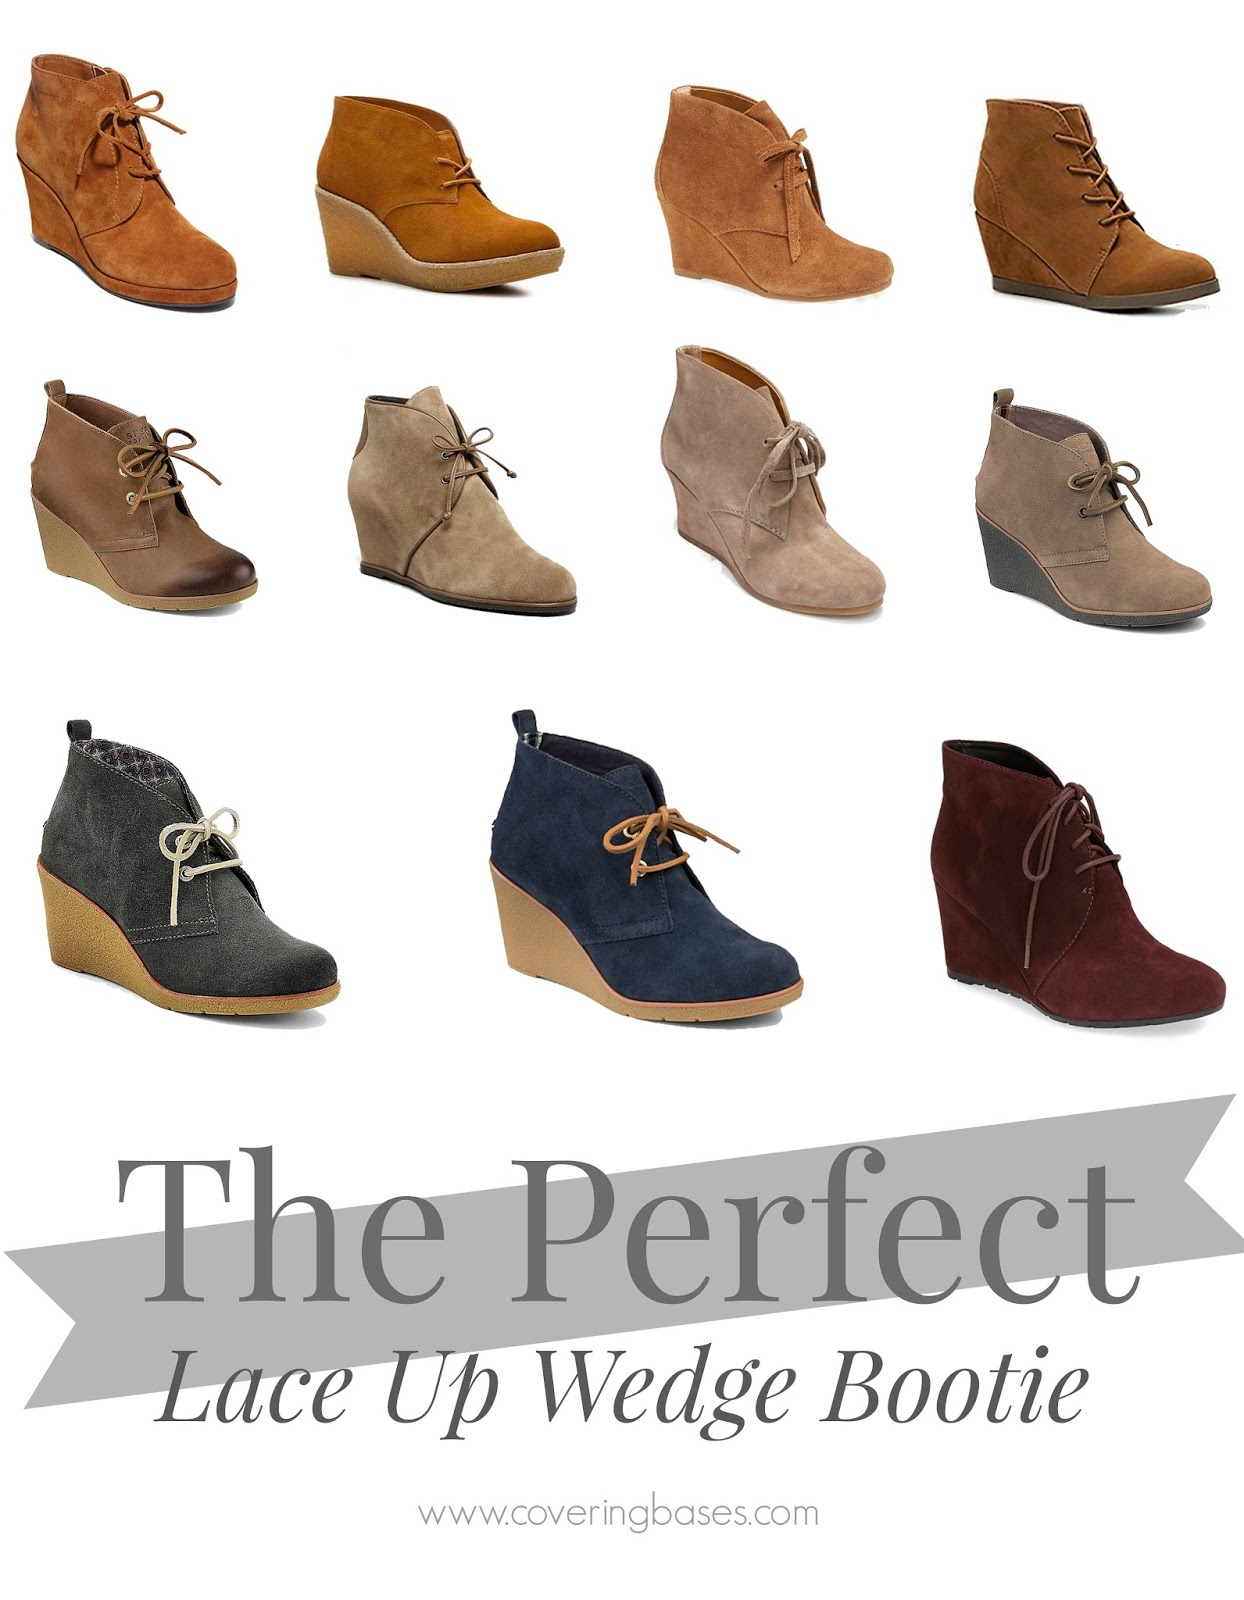 Your Guide to Lace Up Wedge Booties